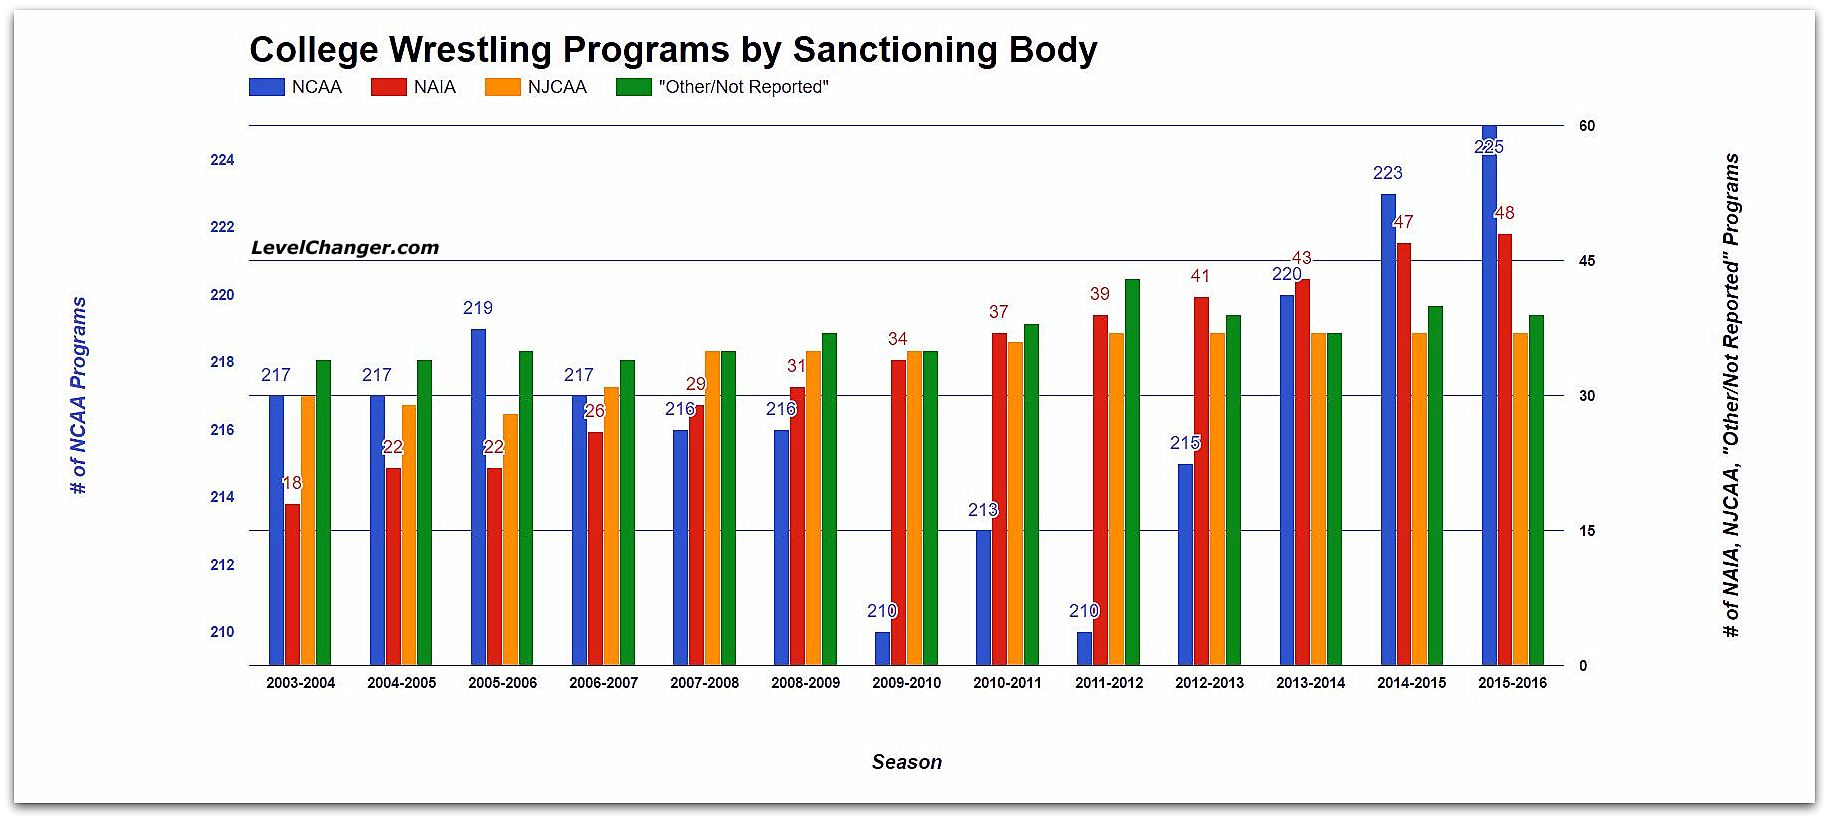 College Wrestling Programs by Sanctioning Body Source: US Dept. of Education Tap or click to enlarge